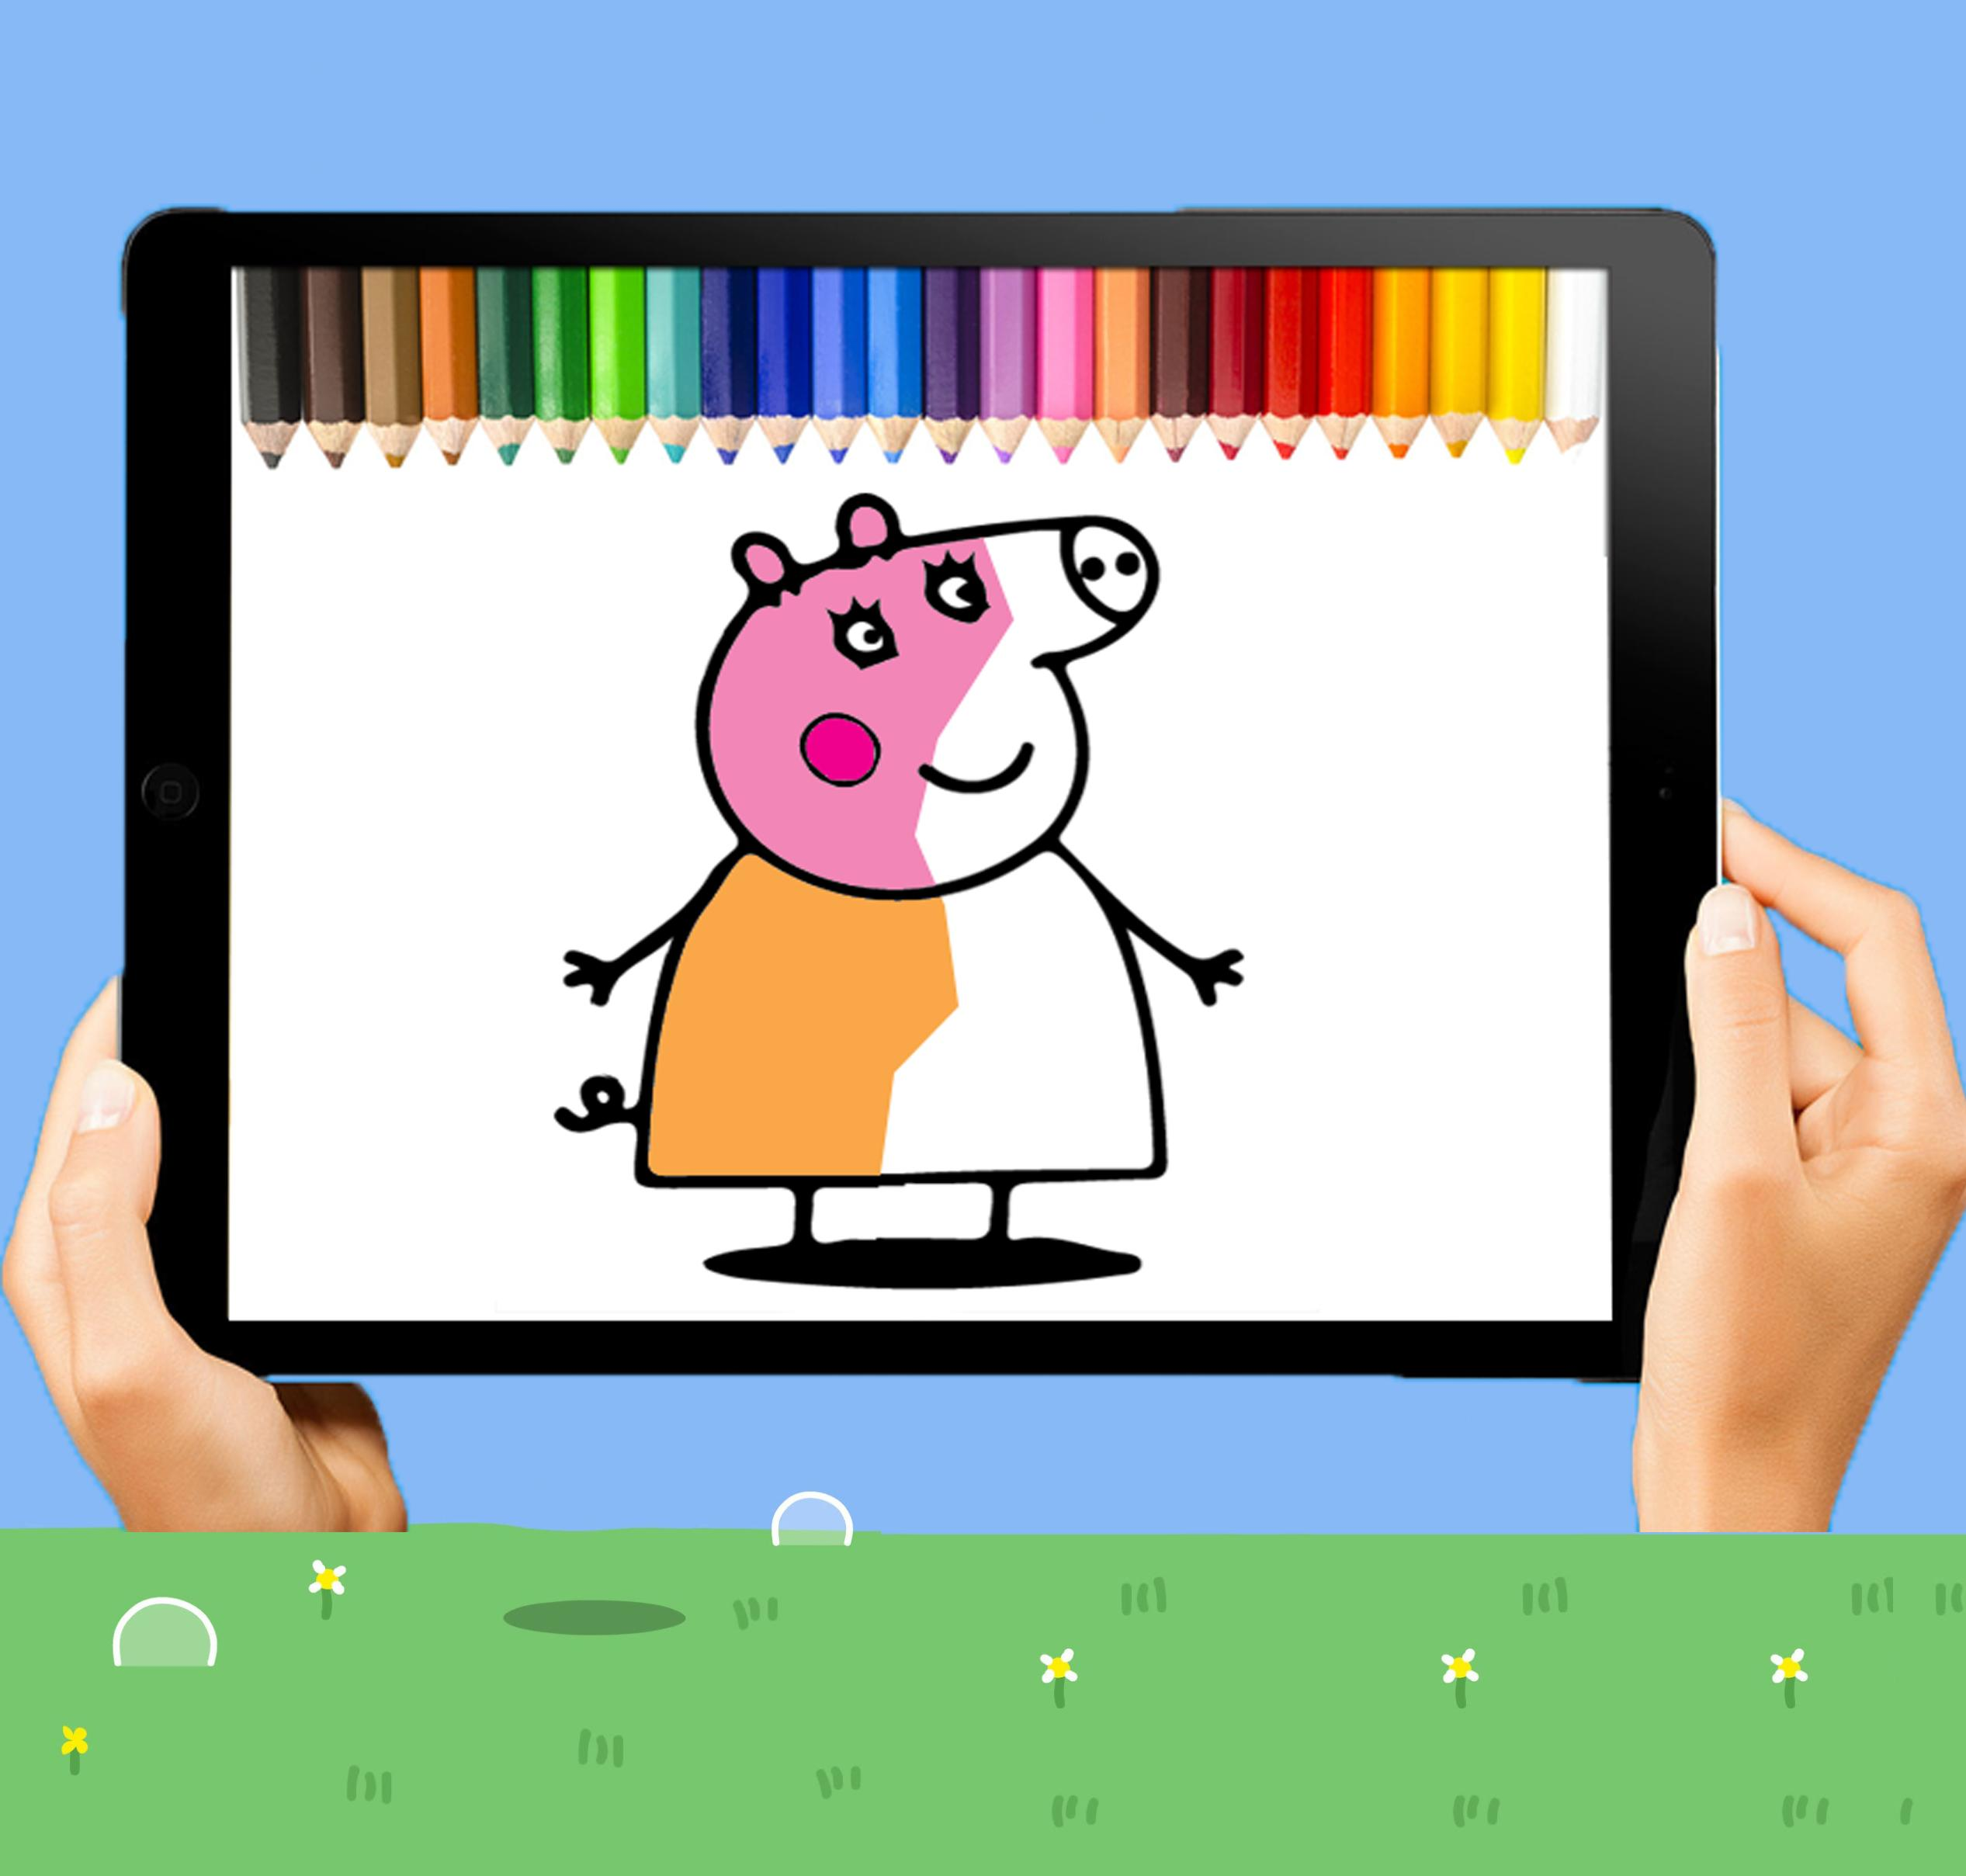 coloring peppa pig game for Android - APK Download